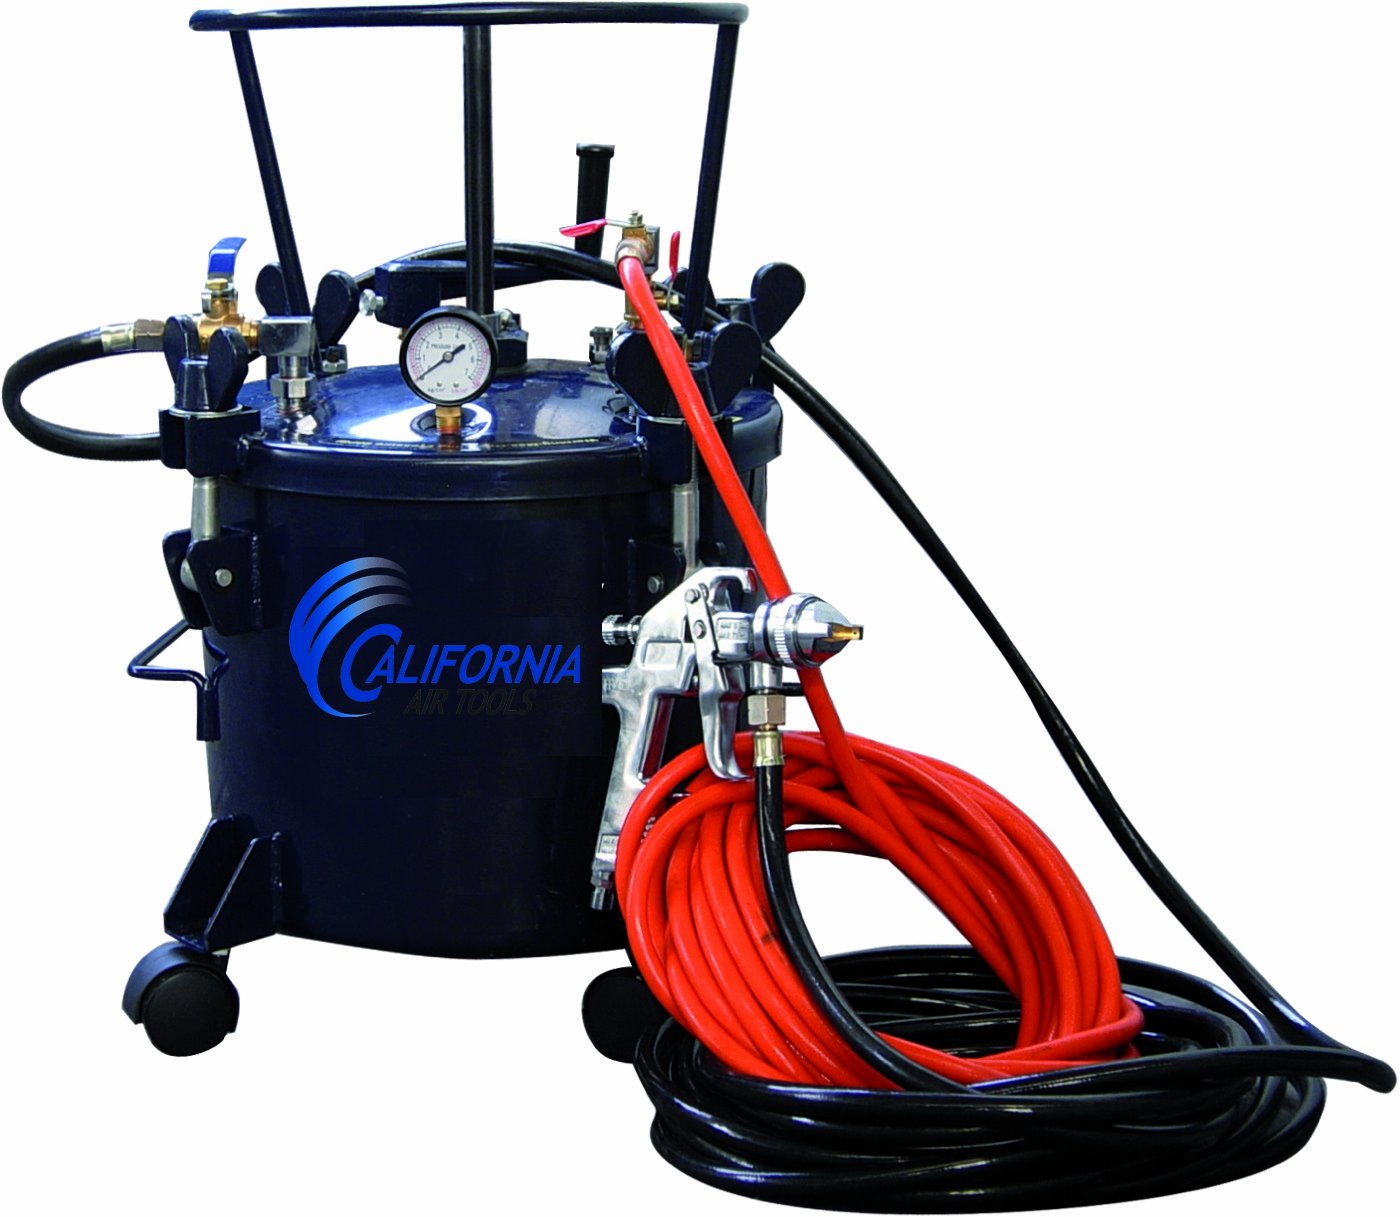 California Air Tools 365 Pressure Pot with HVLP Spray Gun and Hose by California Air Tools